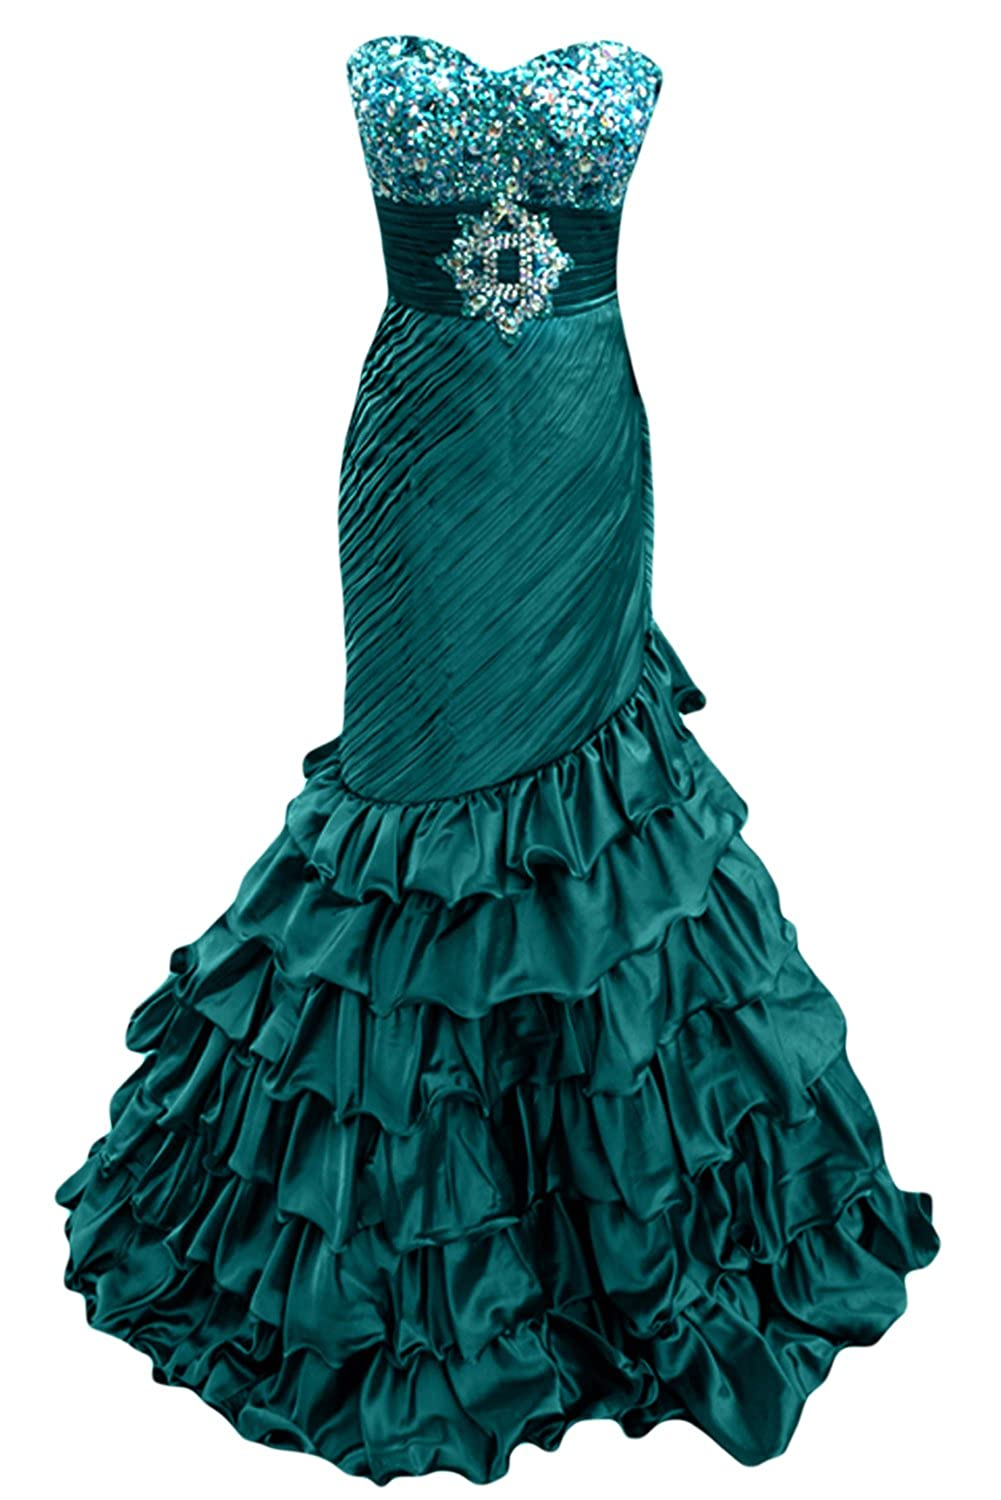 Sunvary Retro Evening Dress Sweetheart Mermaid Prom Gown Long with Sequins